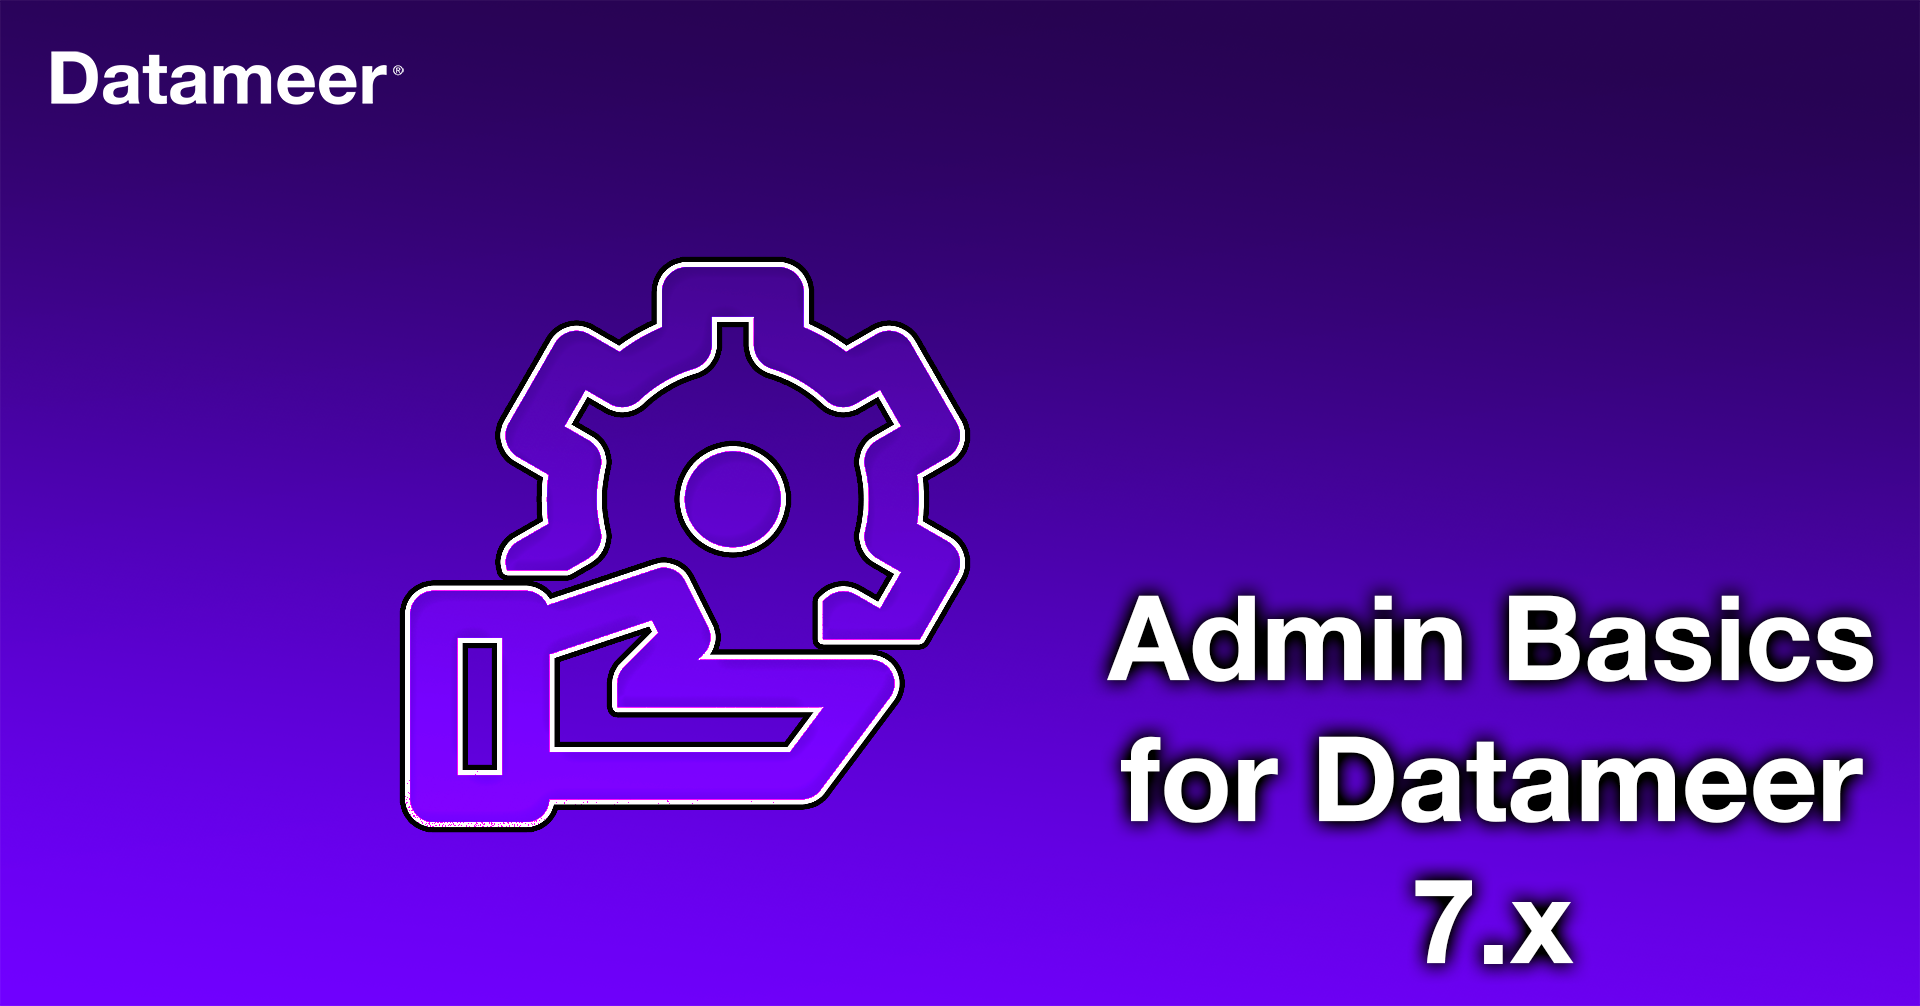 Datameer 7.x Administration Basics